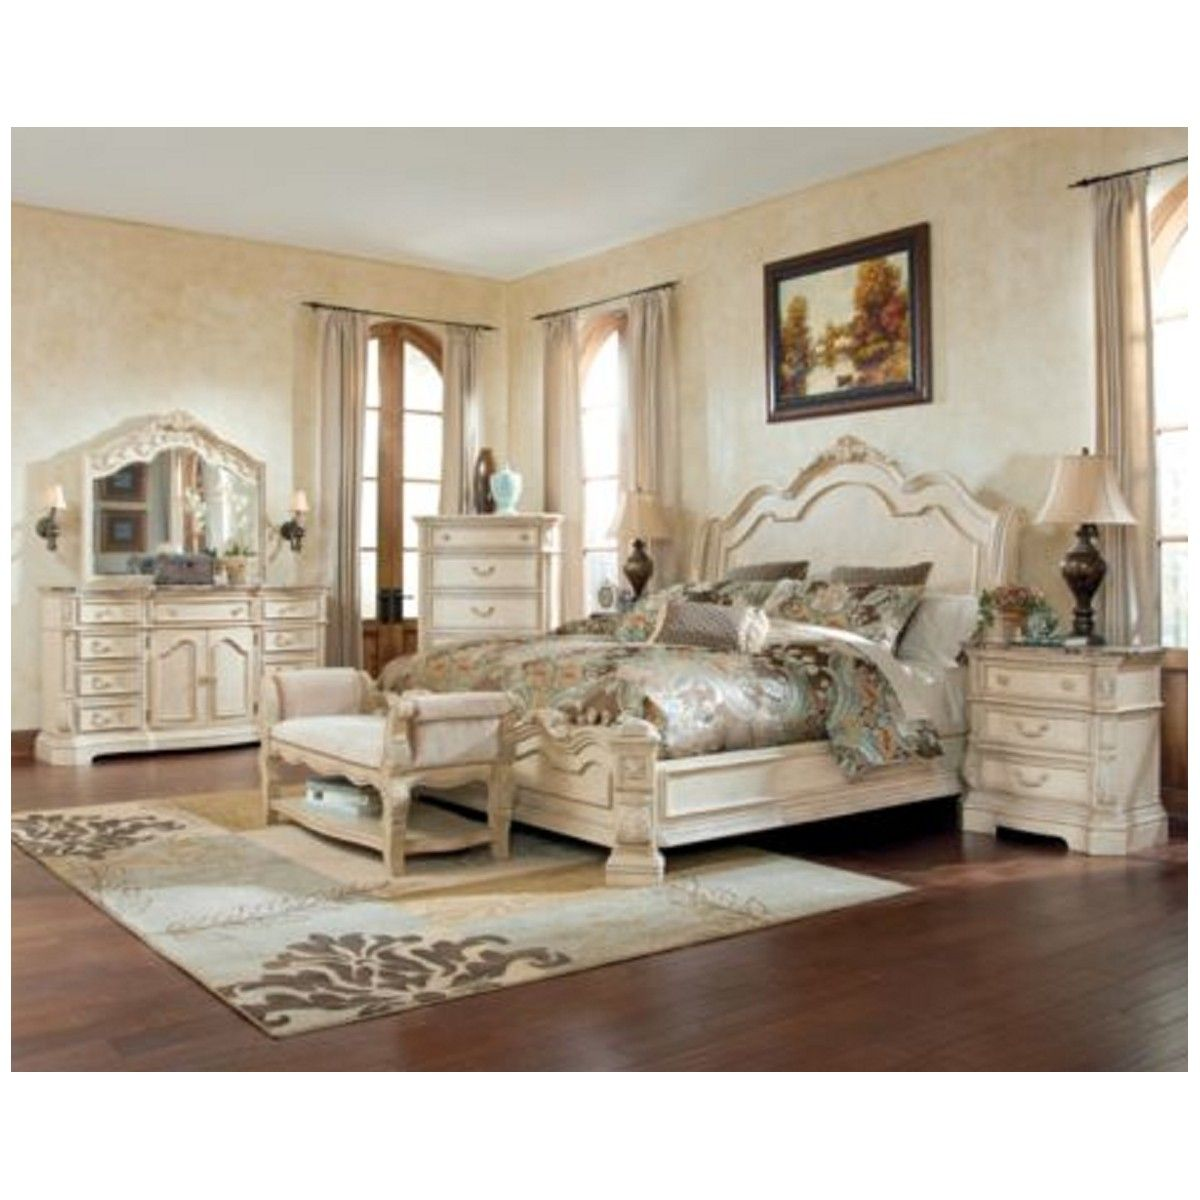 sets bunk ideas cozy sale bedroom on your ashley appealing pics clearance furniture for at bedrooms ashleys beds fresh home